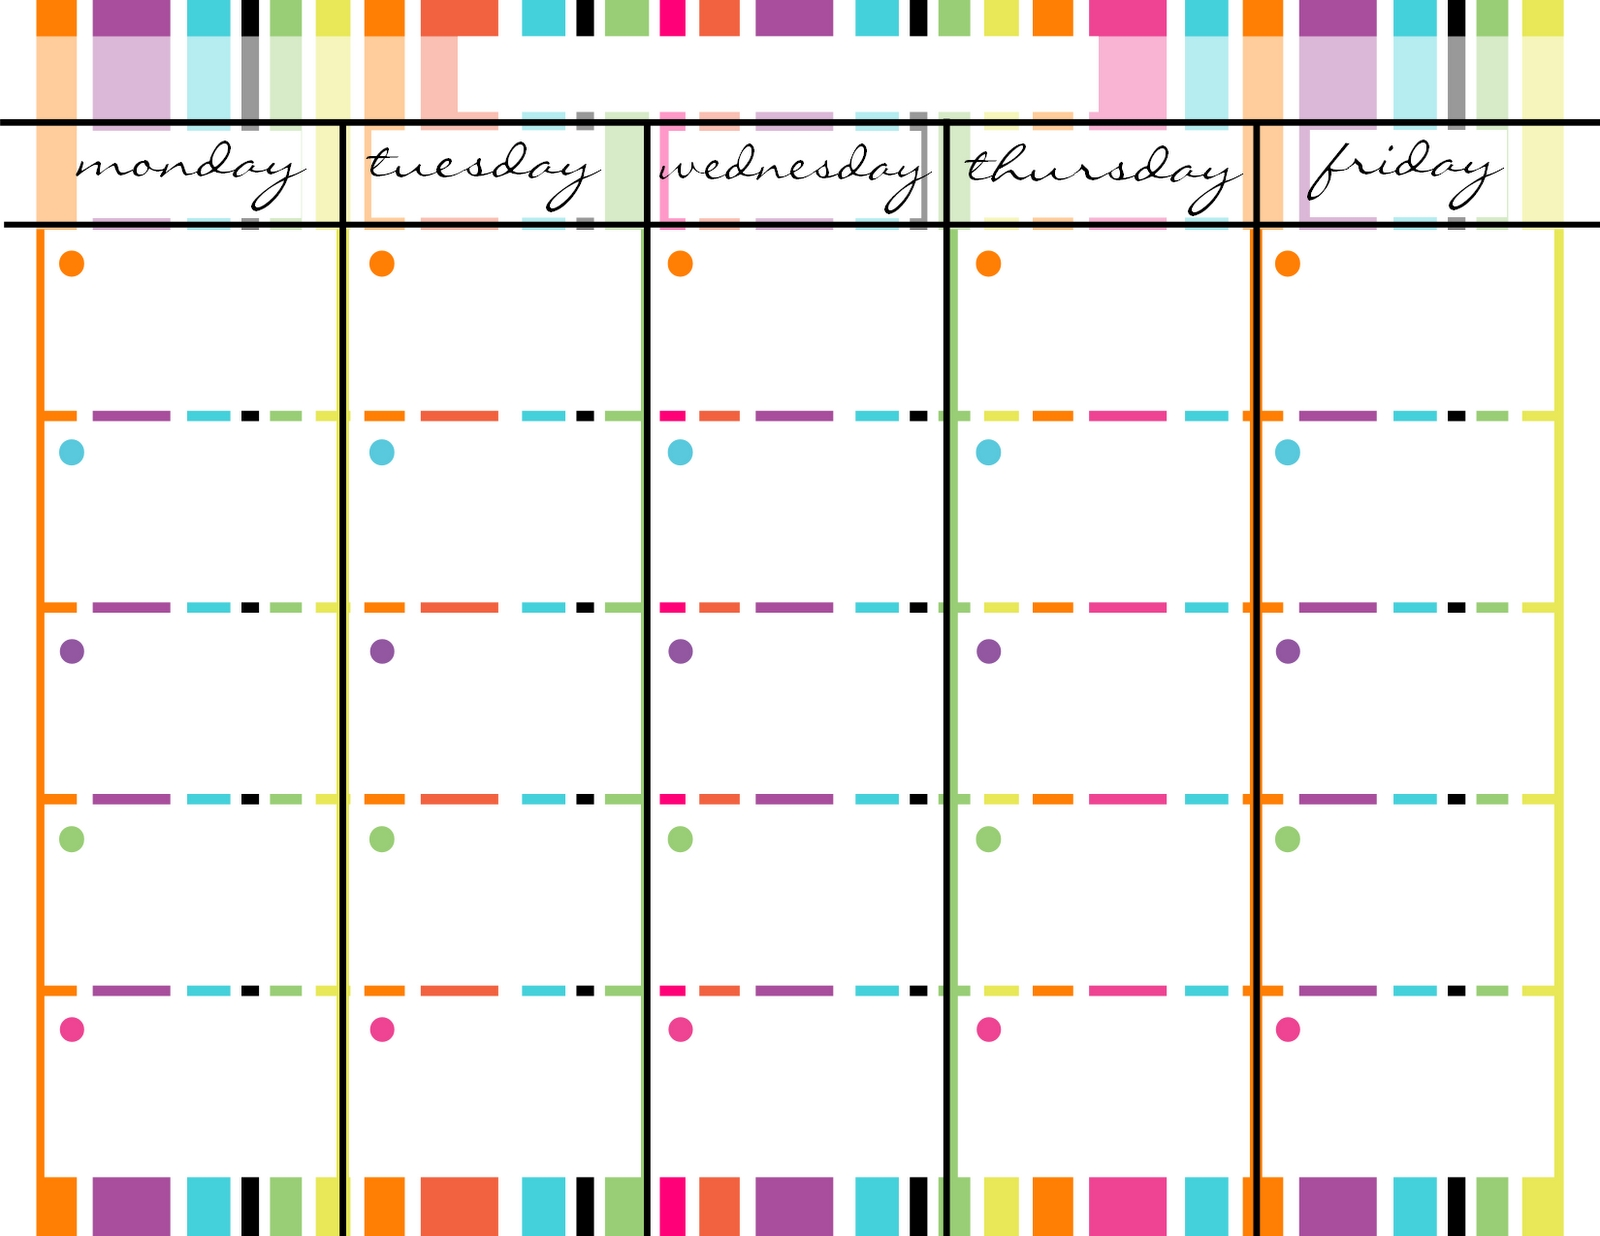 Blank Monday Through Friday Printable Calendar | School-Weekly Calendar Templates Free Printable Monday-Friday